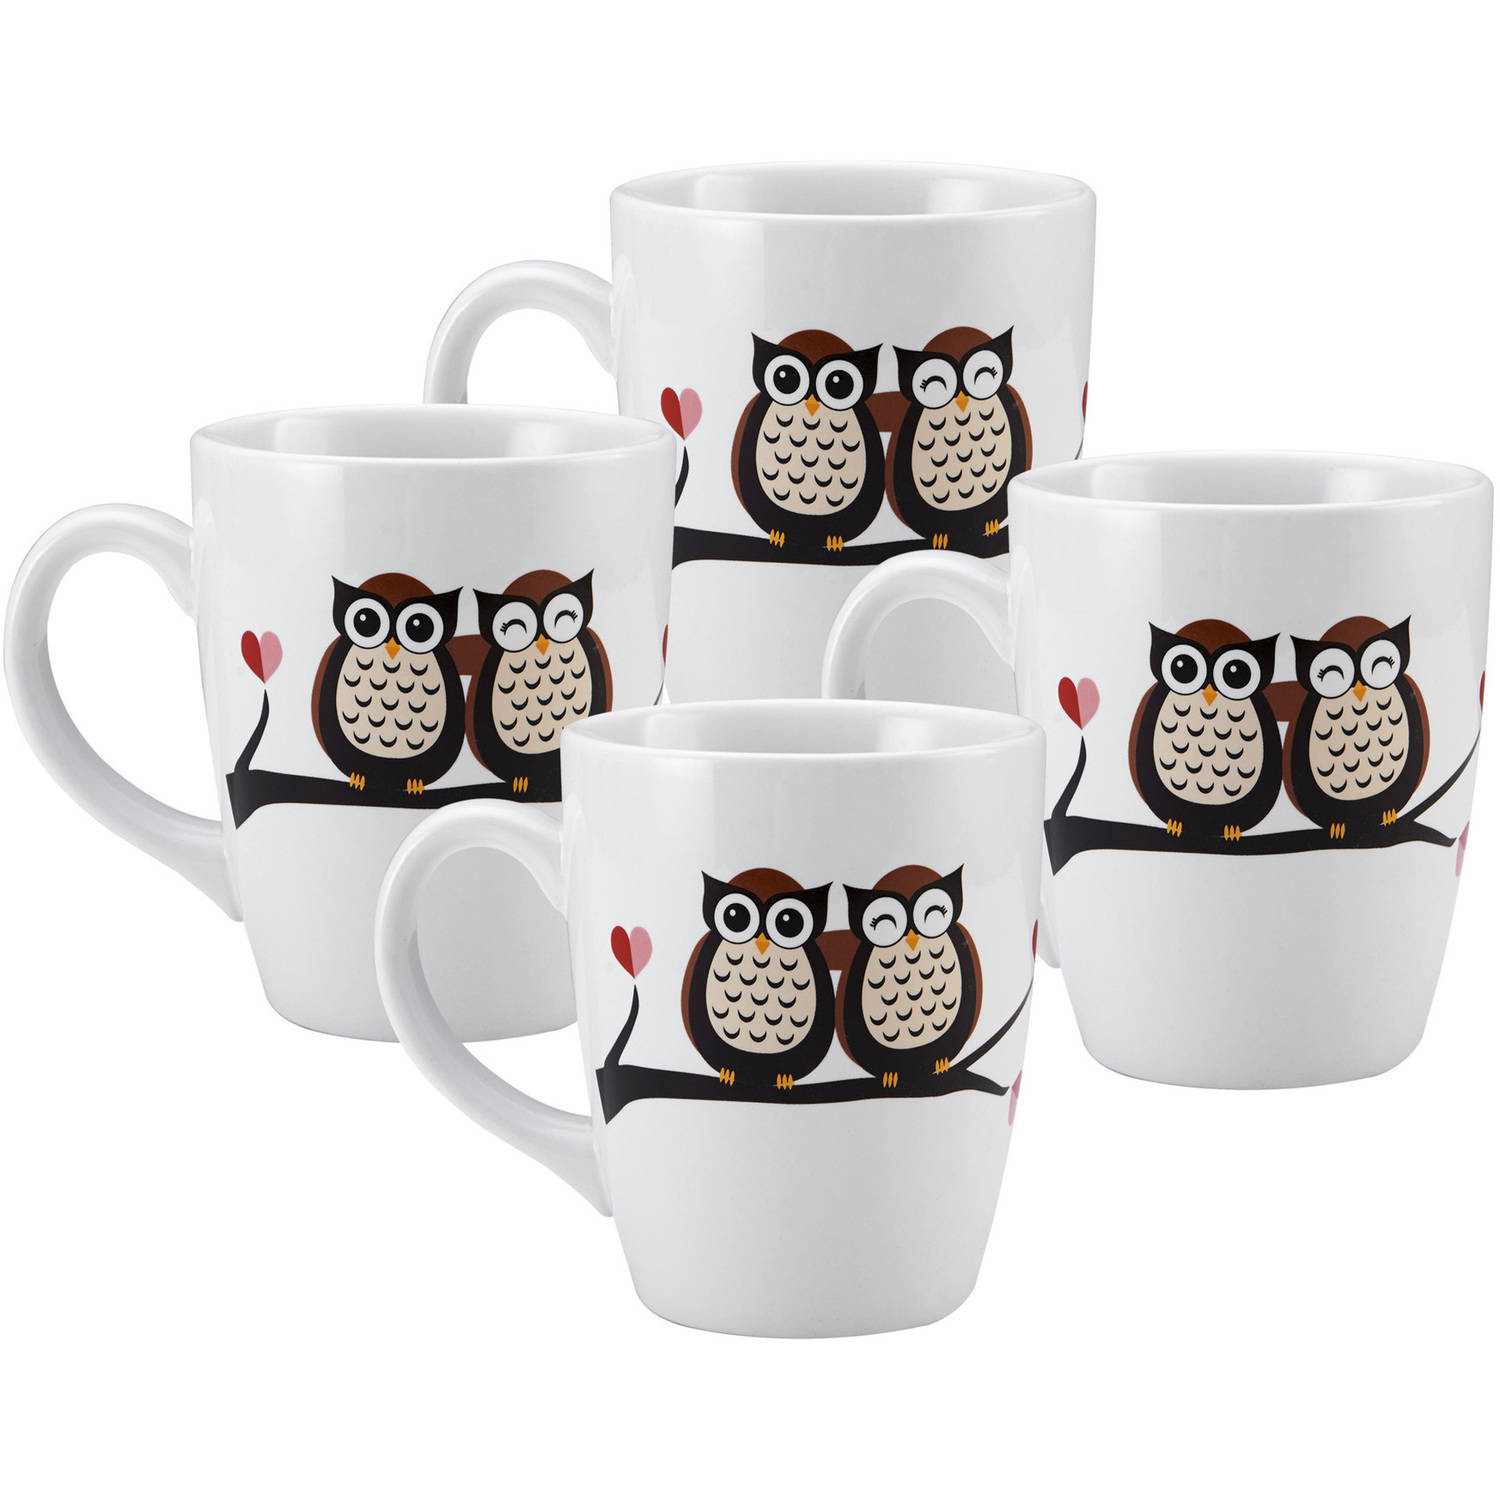 coffee mug sets coffee mug sets uk interior design amp decorating ideas 30017